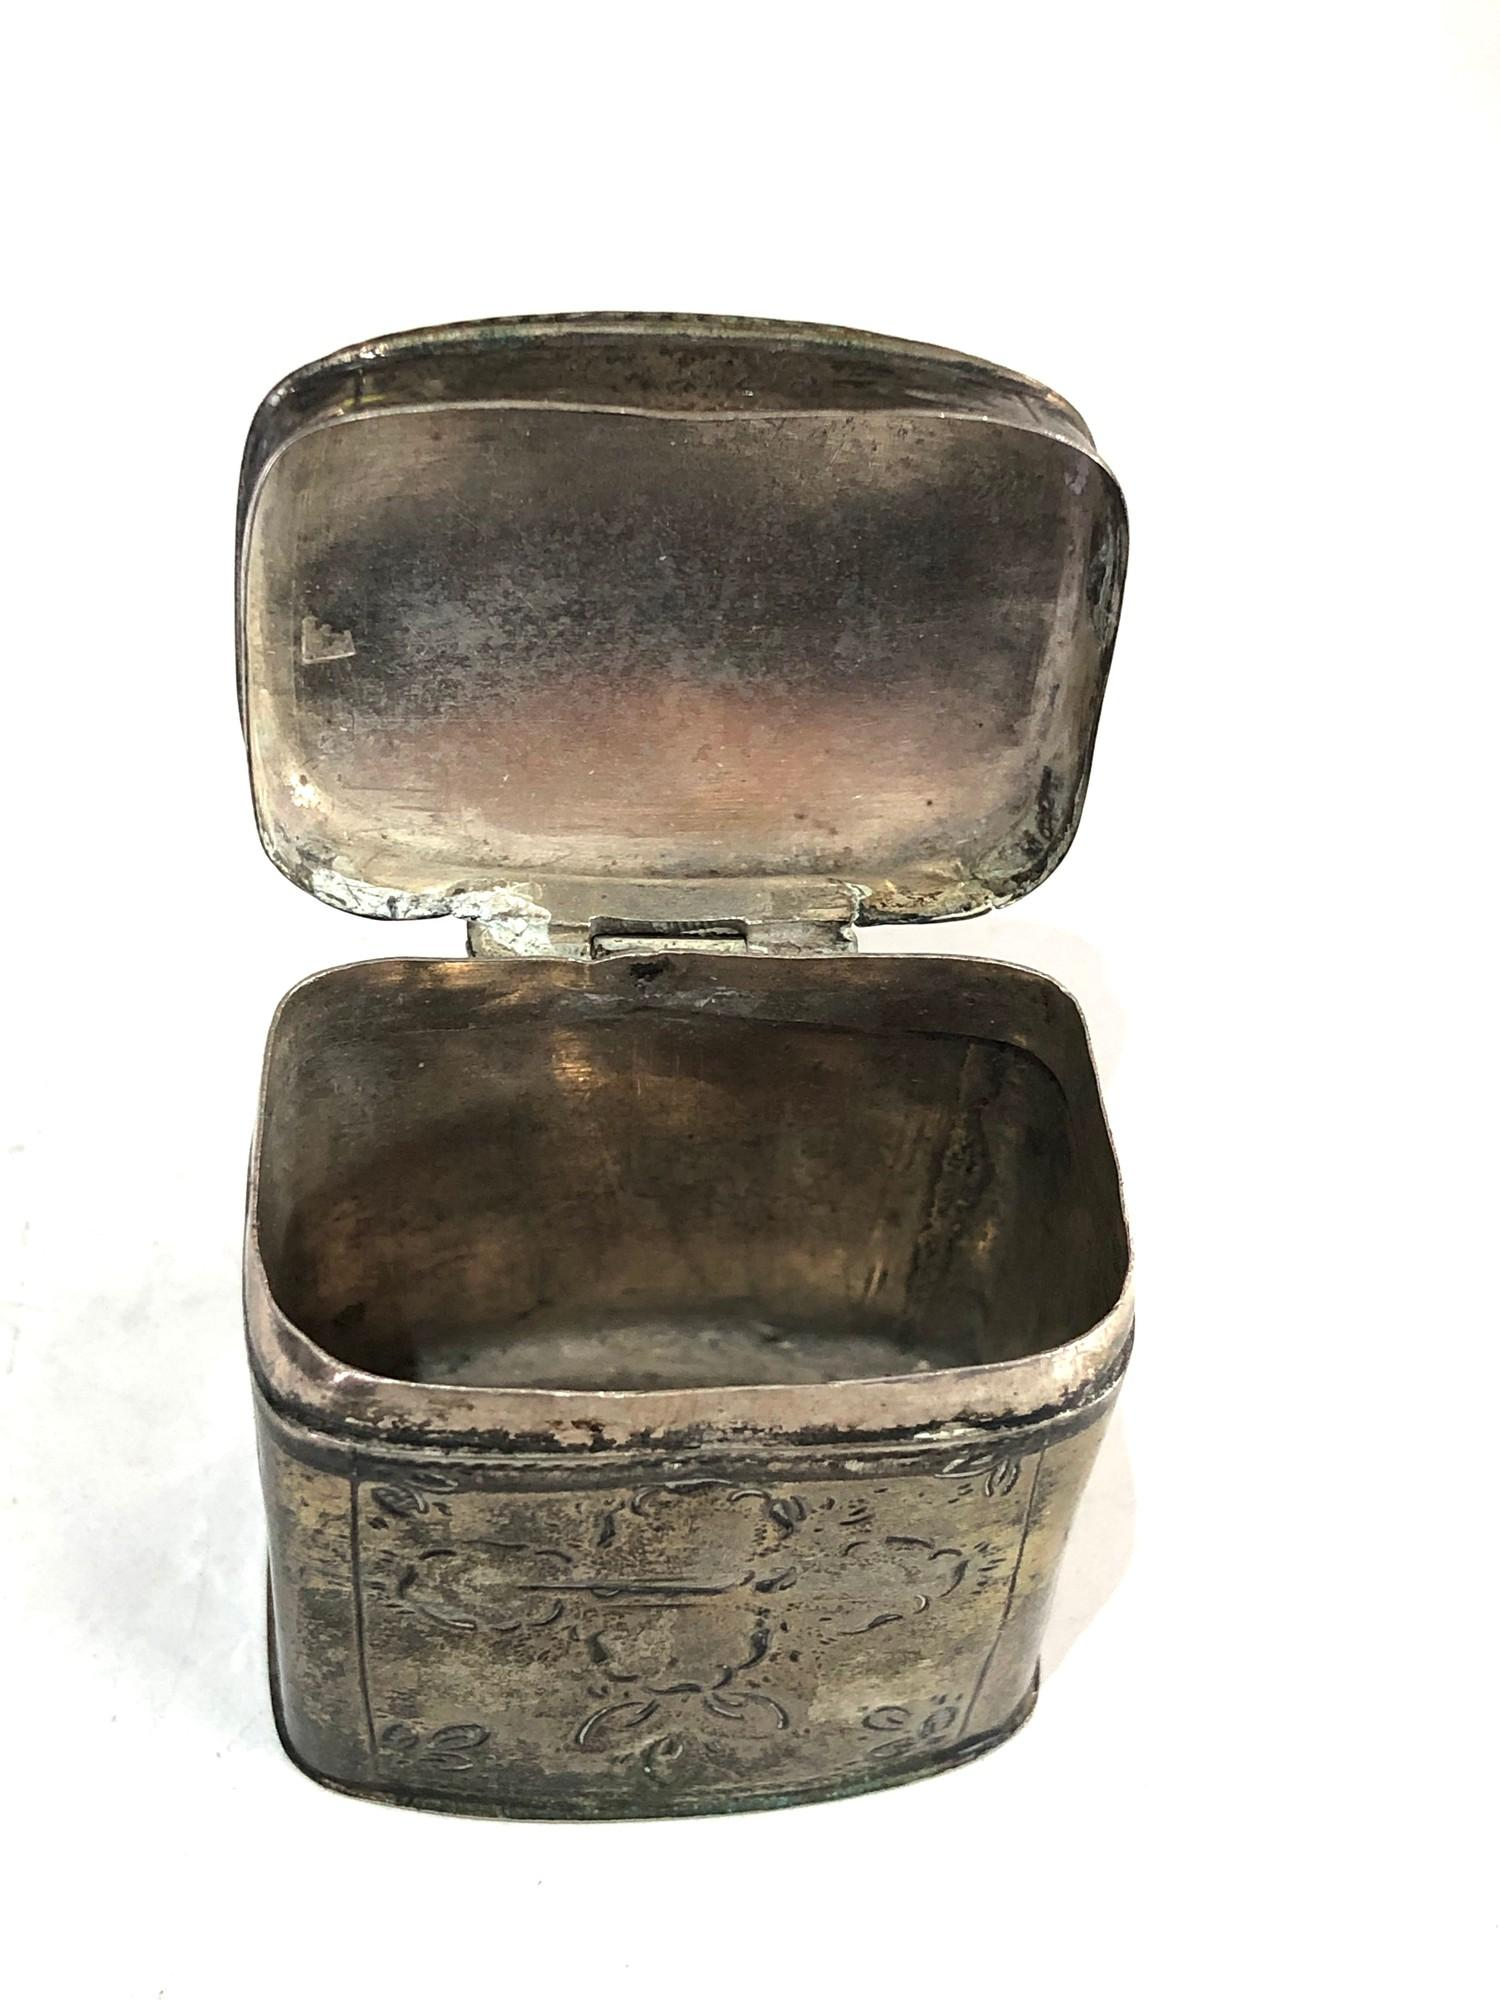 Antique Dutch silver peppermint box measures approx 4cm high and 4cm by 3cm age related wear dent - Image 4 of 6